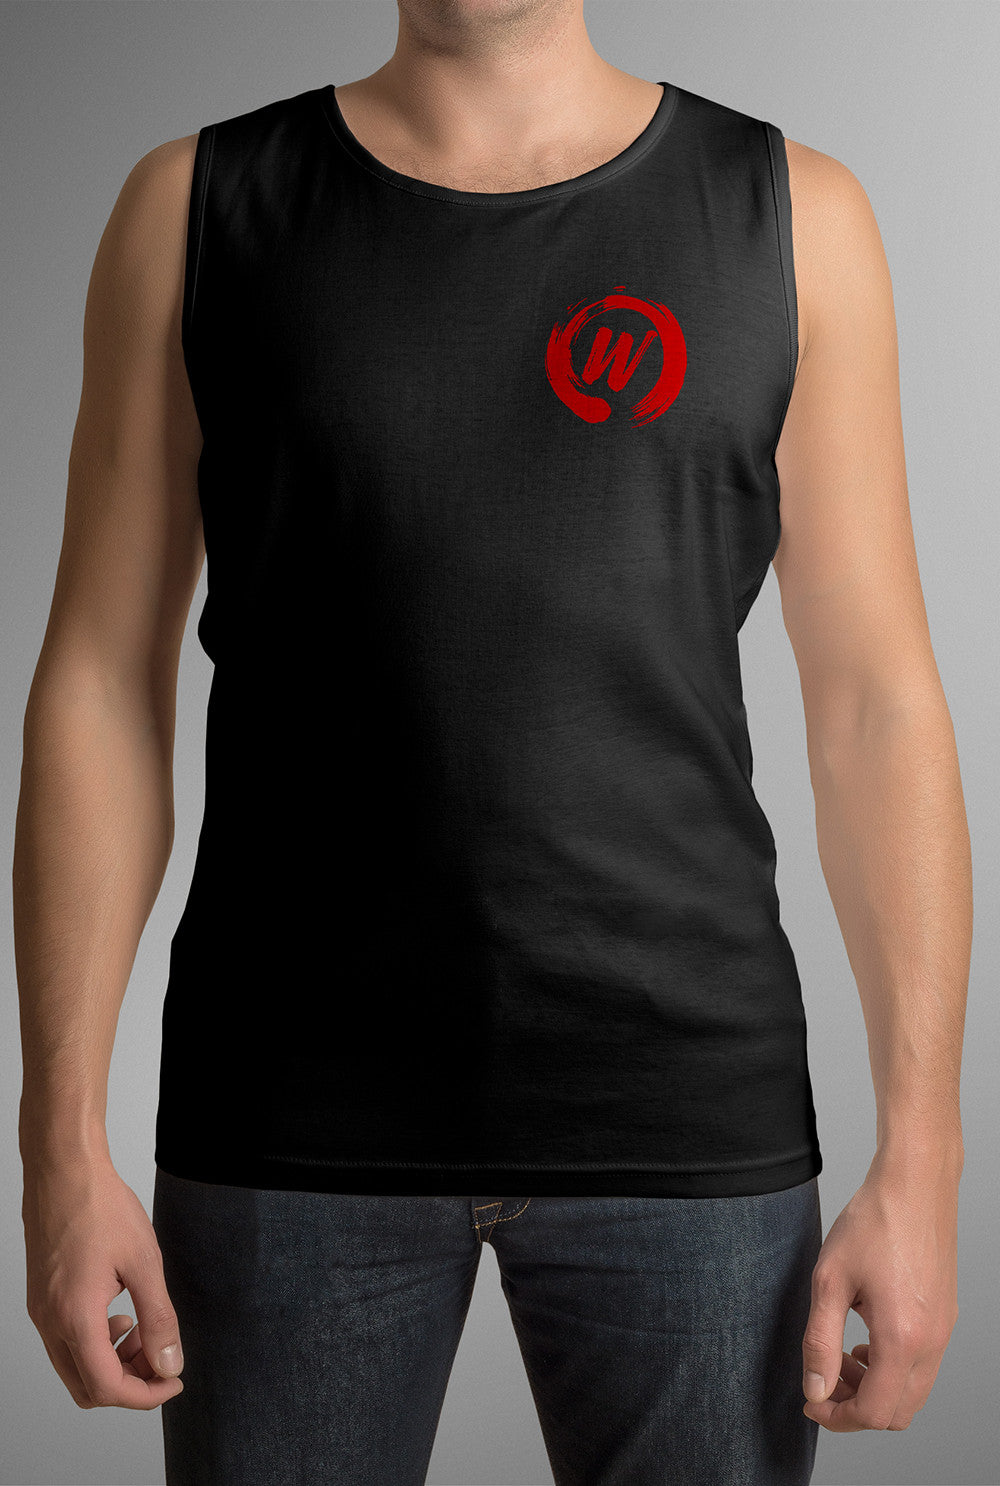 Will VEST - LOGO AS PLACED ON MOCK UP Custom T Shirt by Lets Get Shirty Dot Com